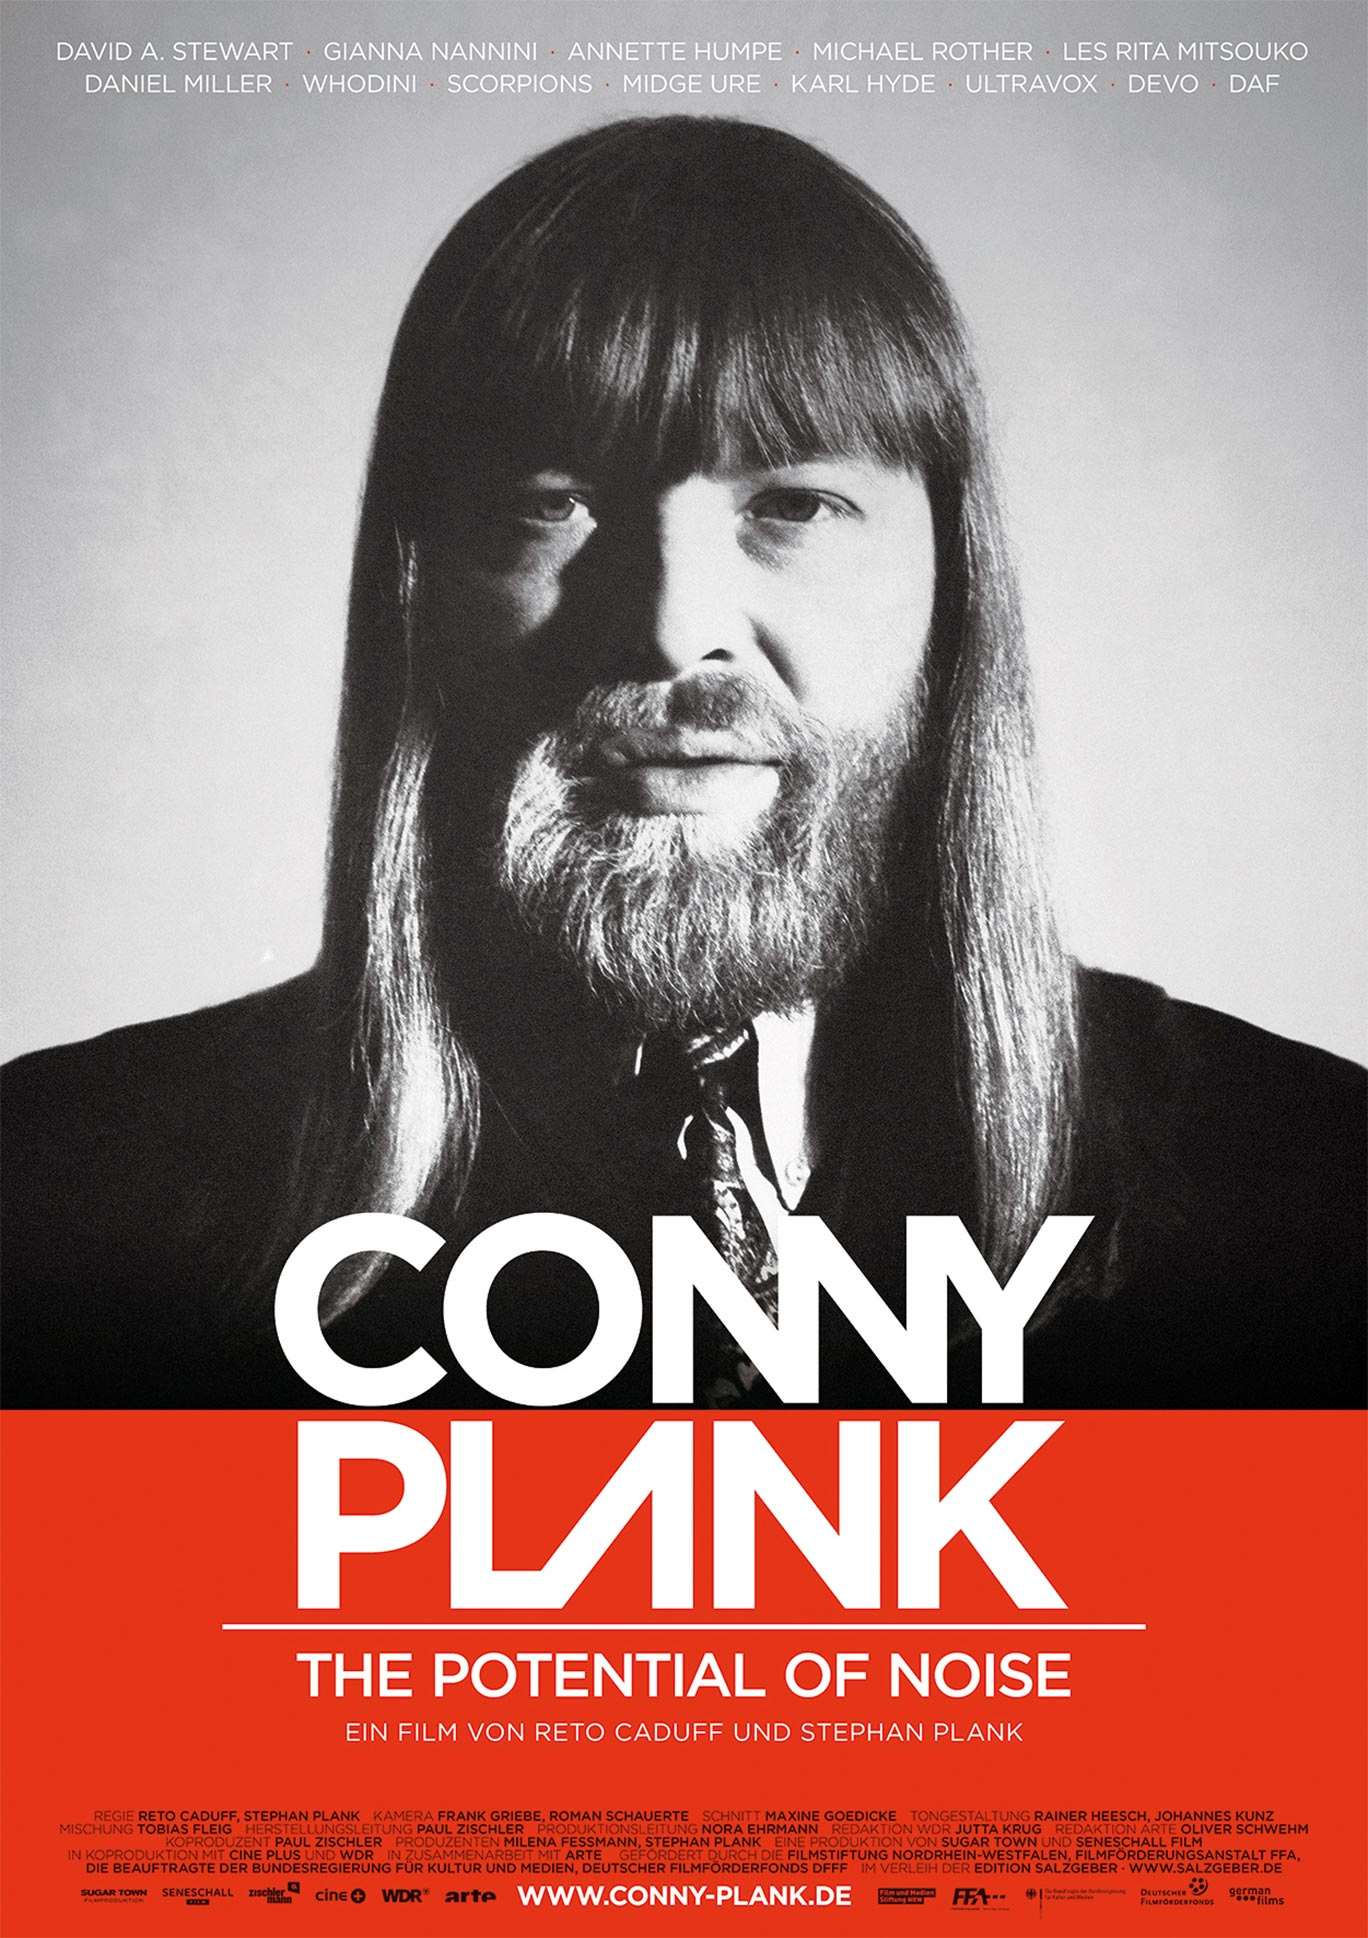 Conny Plank - The Potential of Noise Poster #1